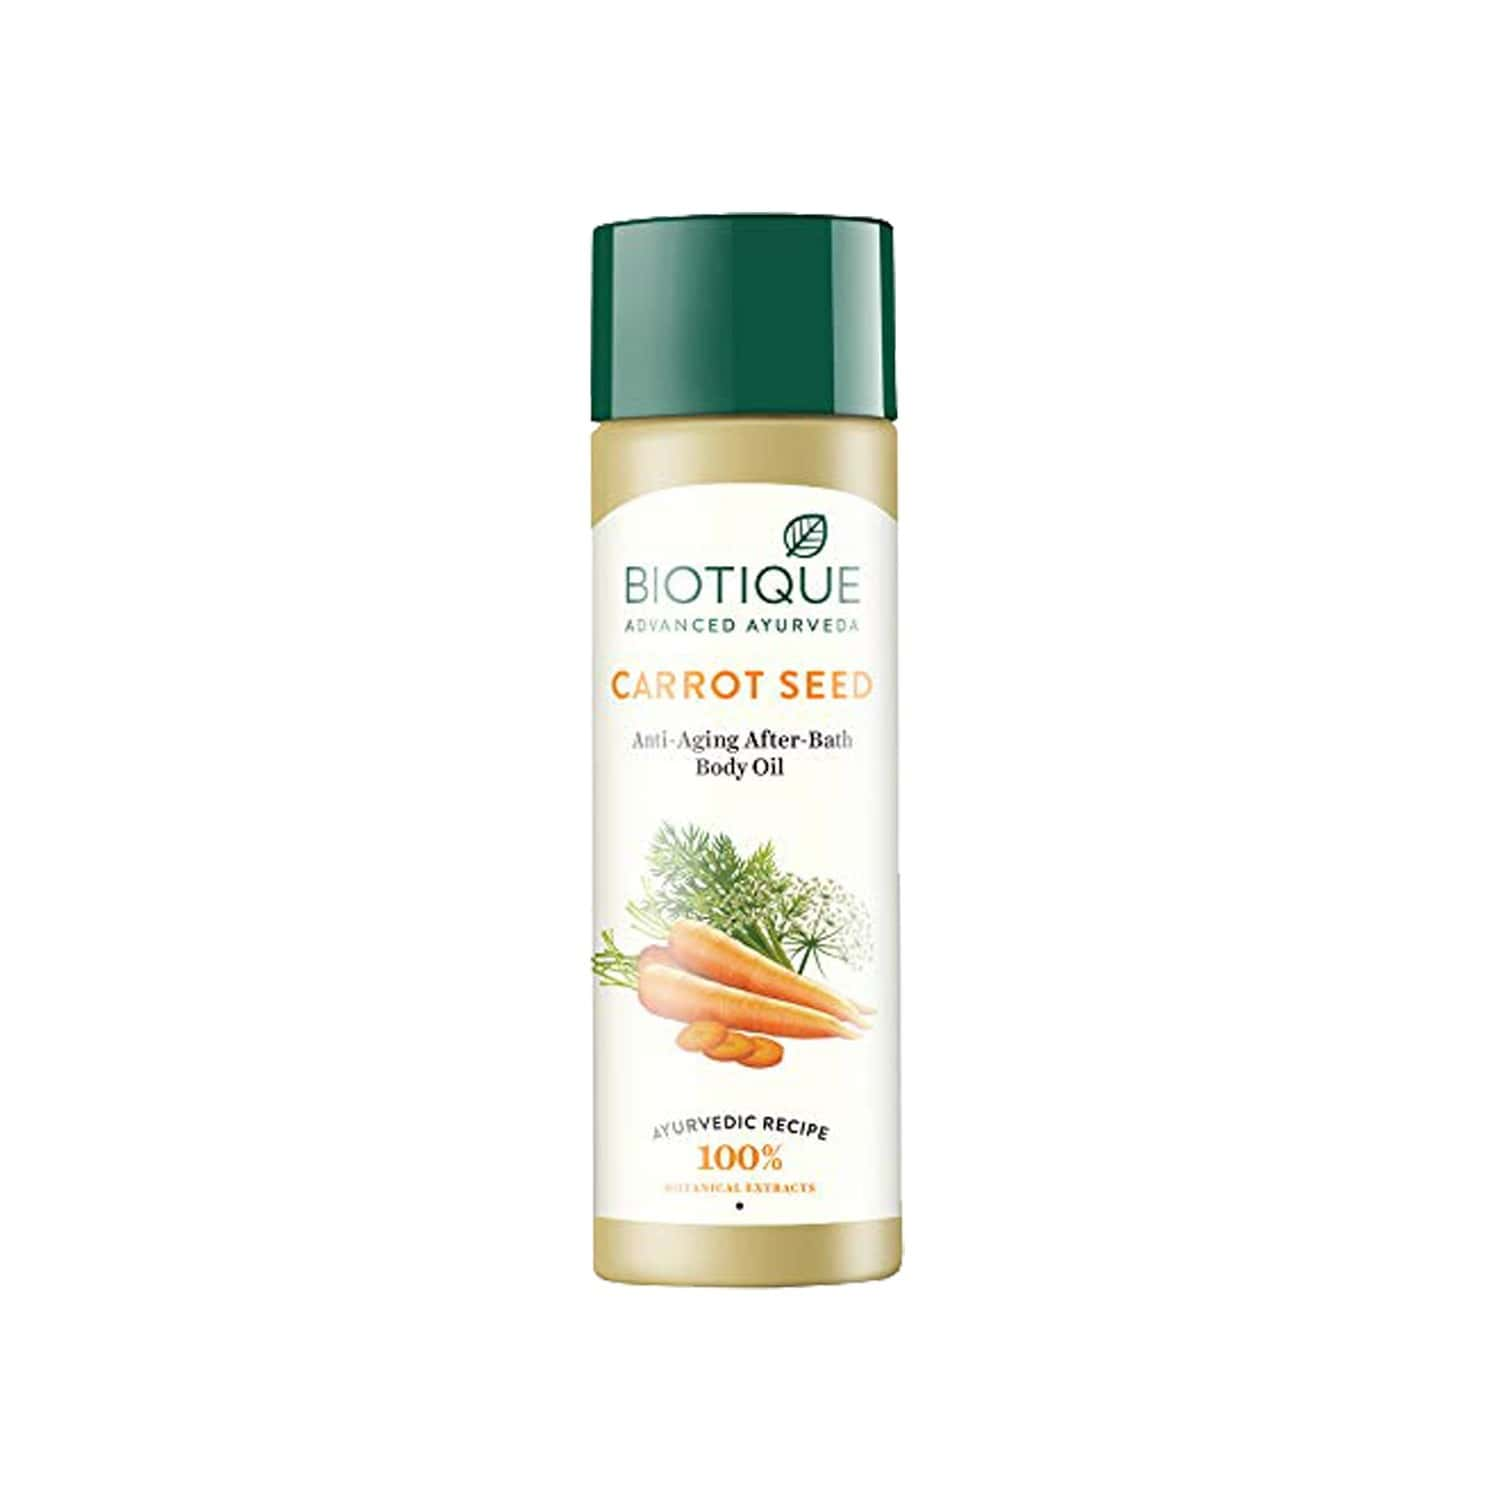 Biotique Bio Carrot Seed Anti Aging After Bath Body Oil - 120 Ml